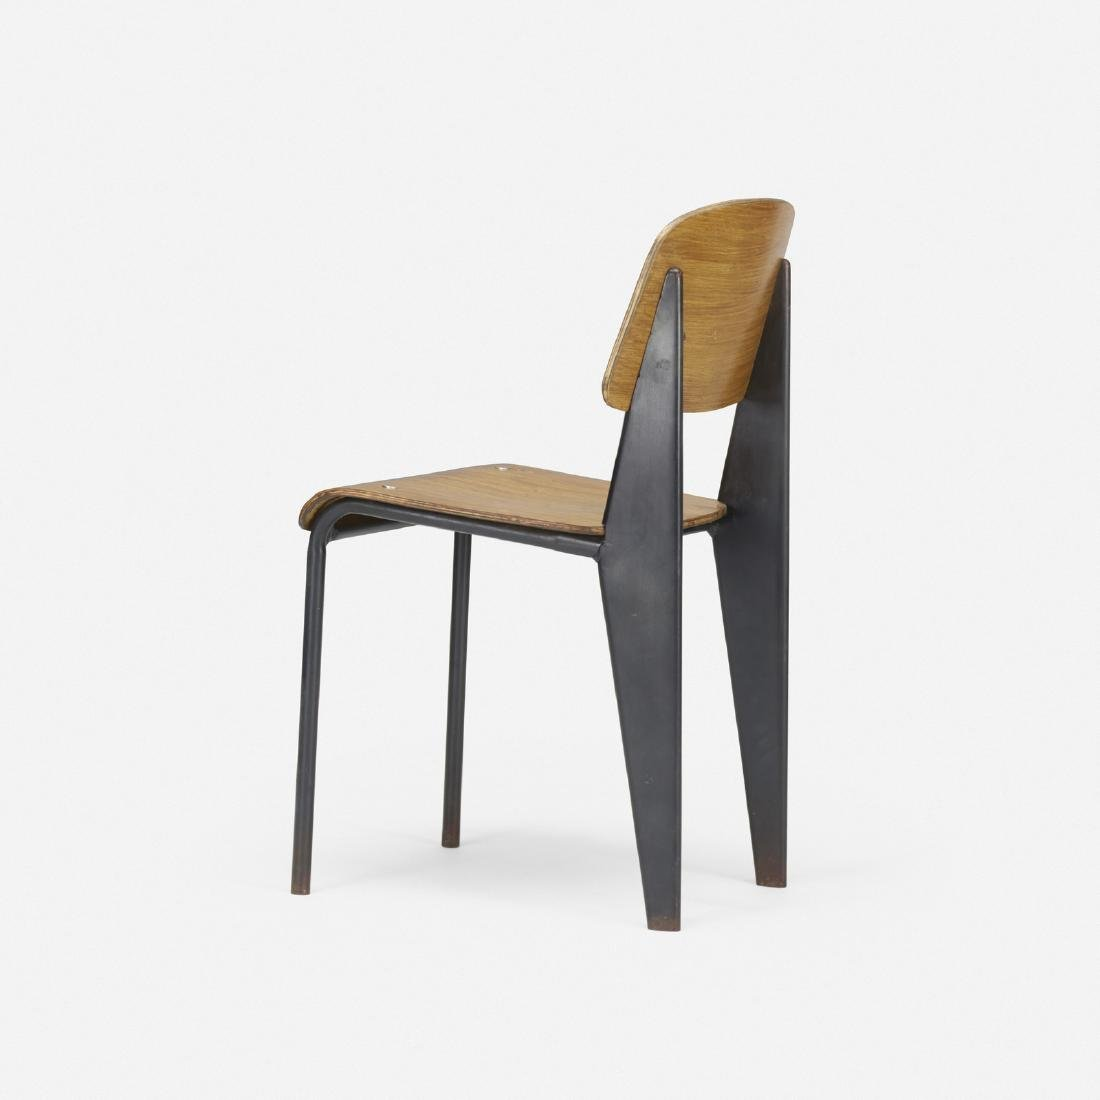 Jean Prouve, 'Semi-Metal' chair, model no. 305